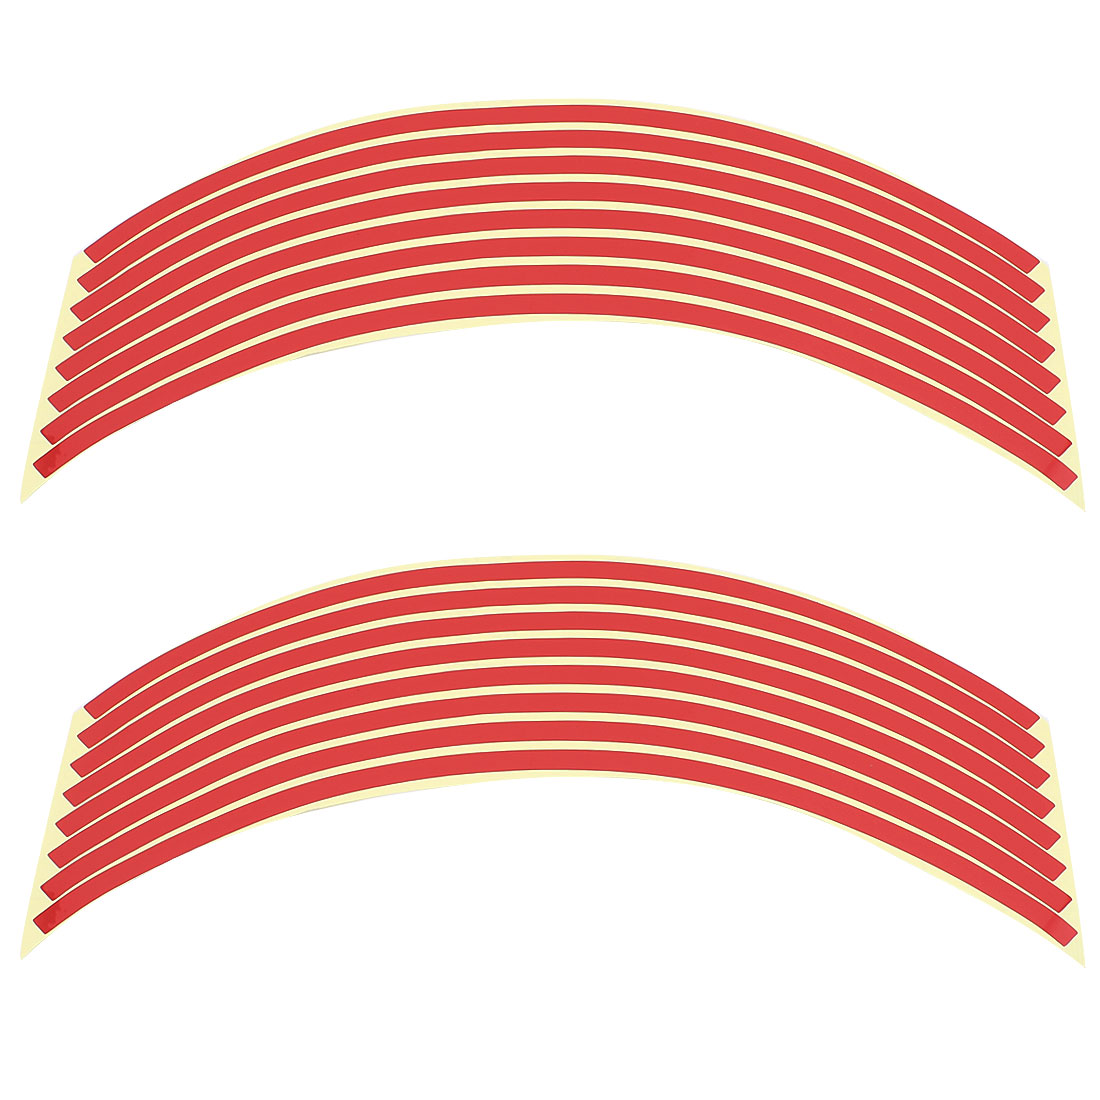 Unique Bargains Self-adhesive Reflective Rim Stripes Wheel Decals Tape Sticker Red